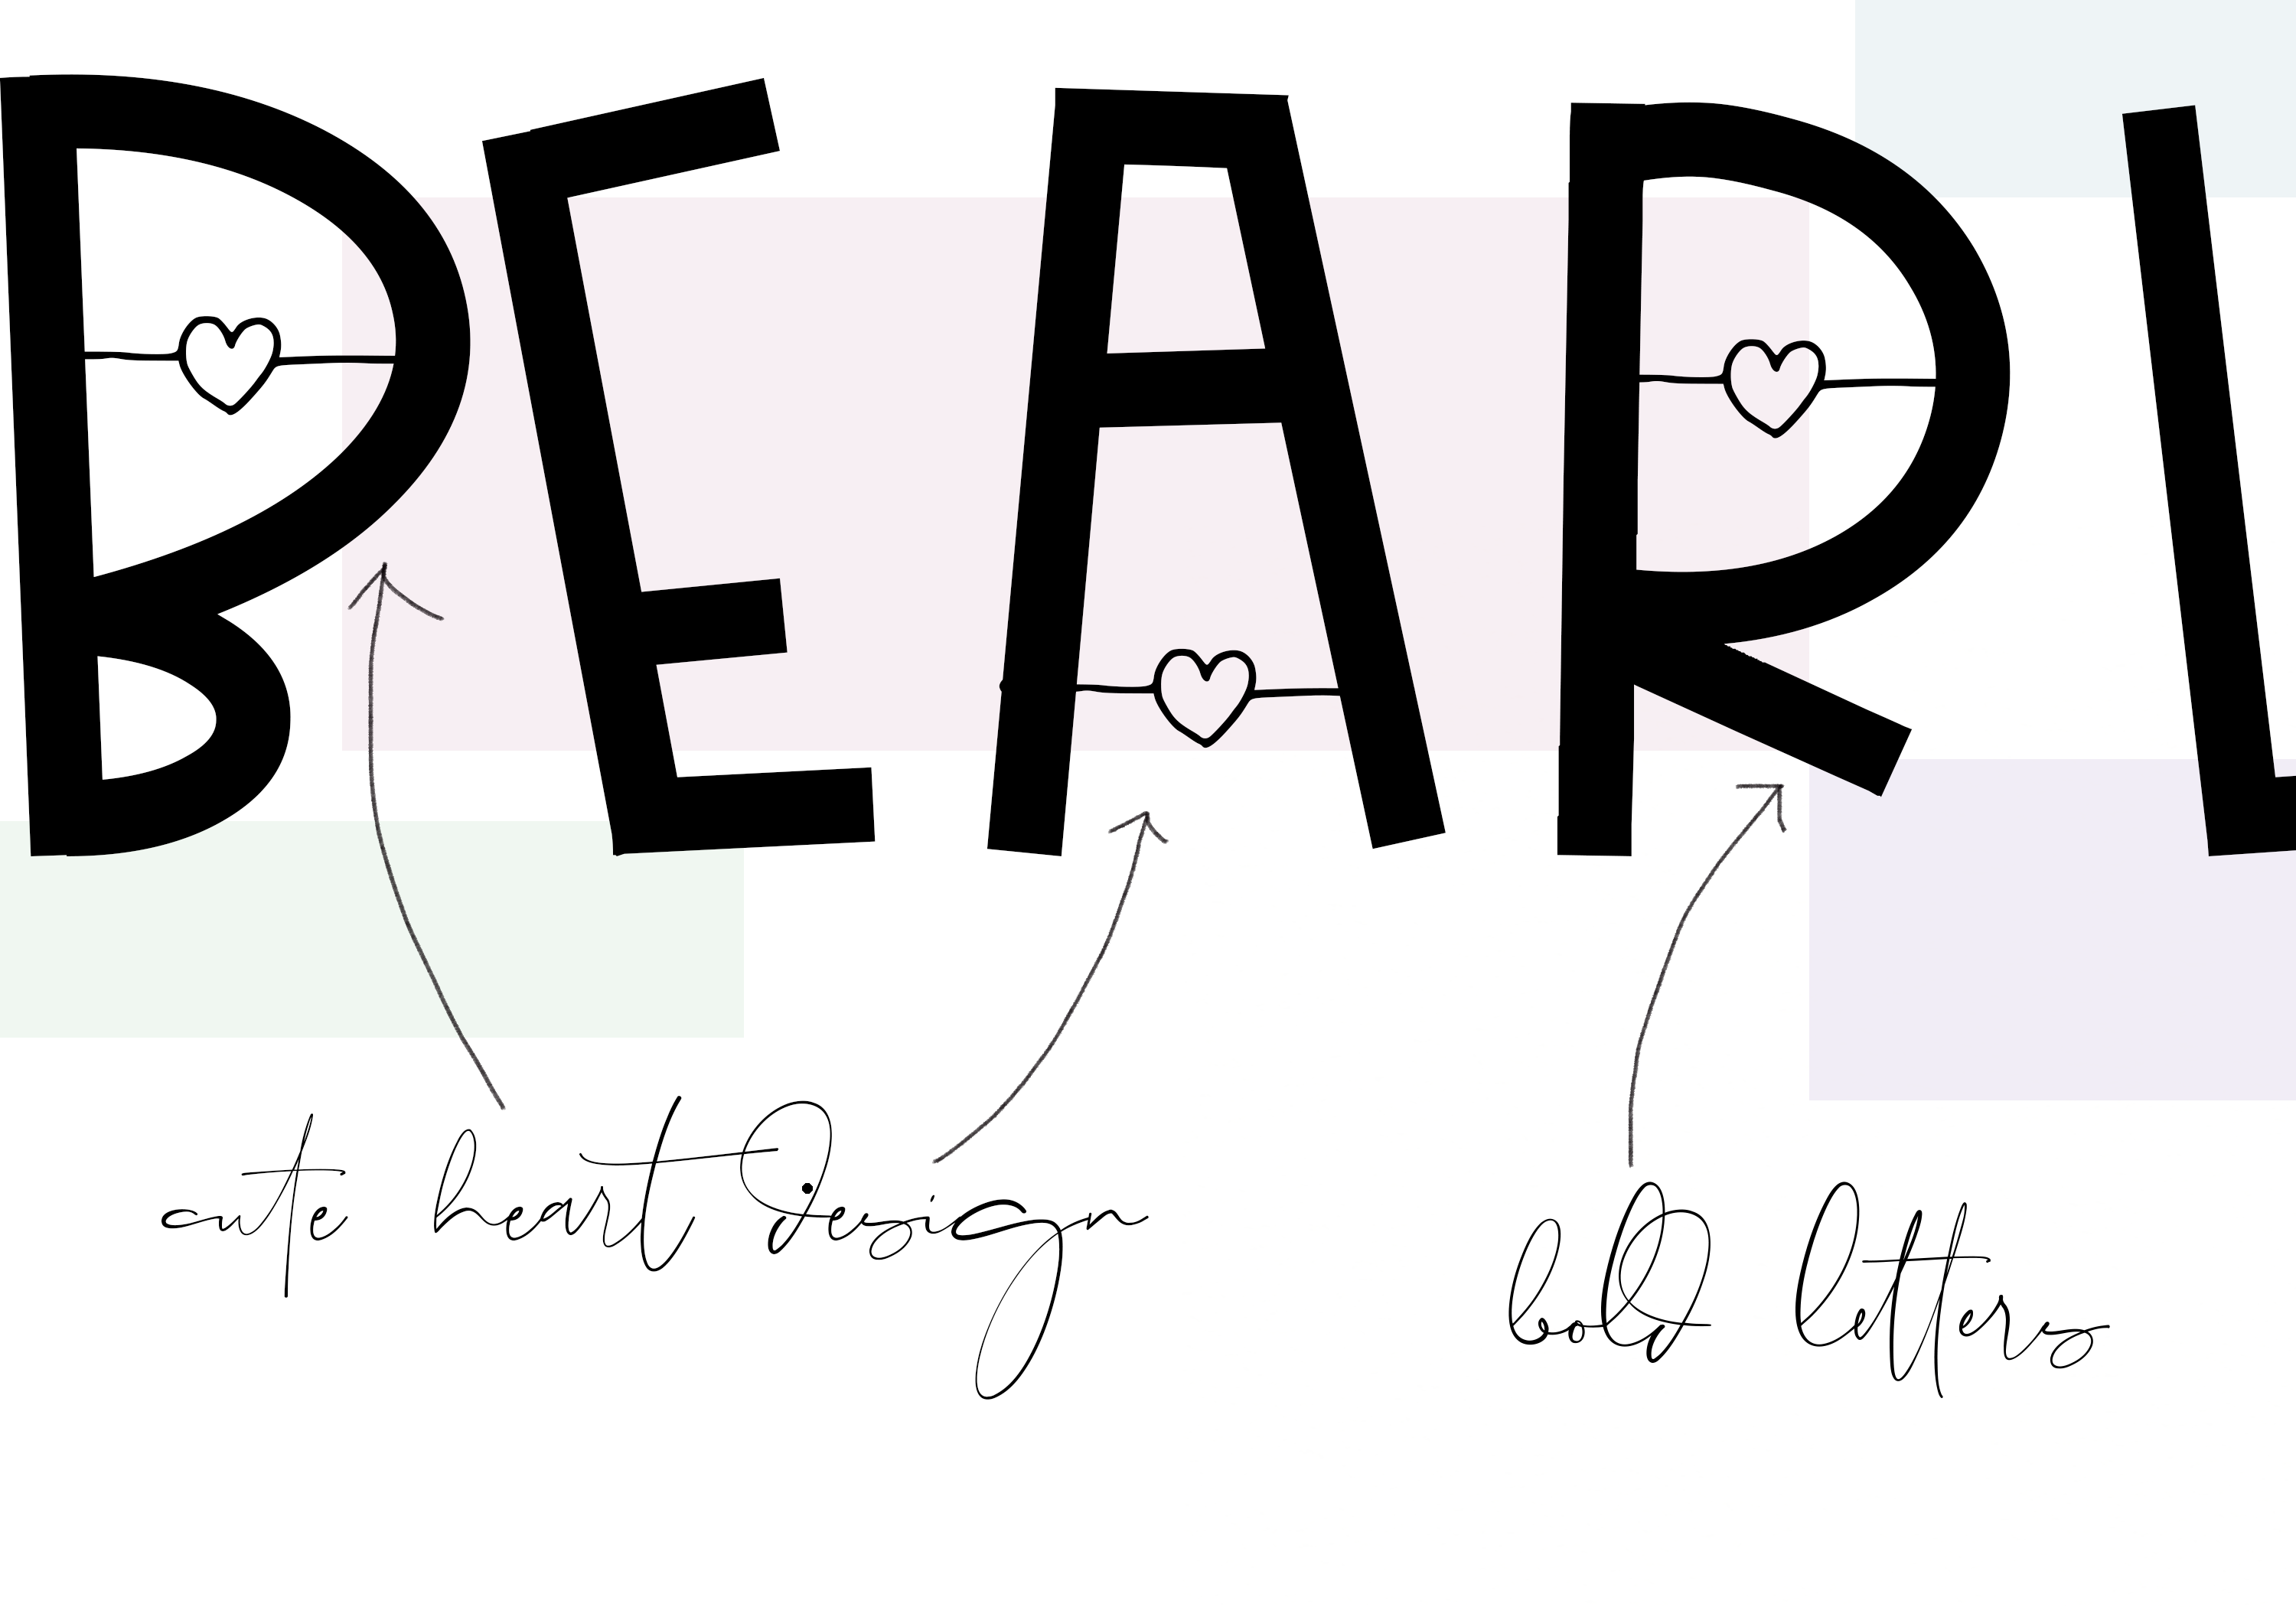 Bearly - Handwritten Font with Hearts example image 5